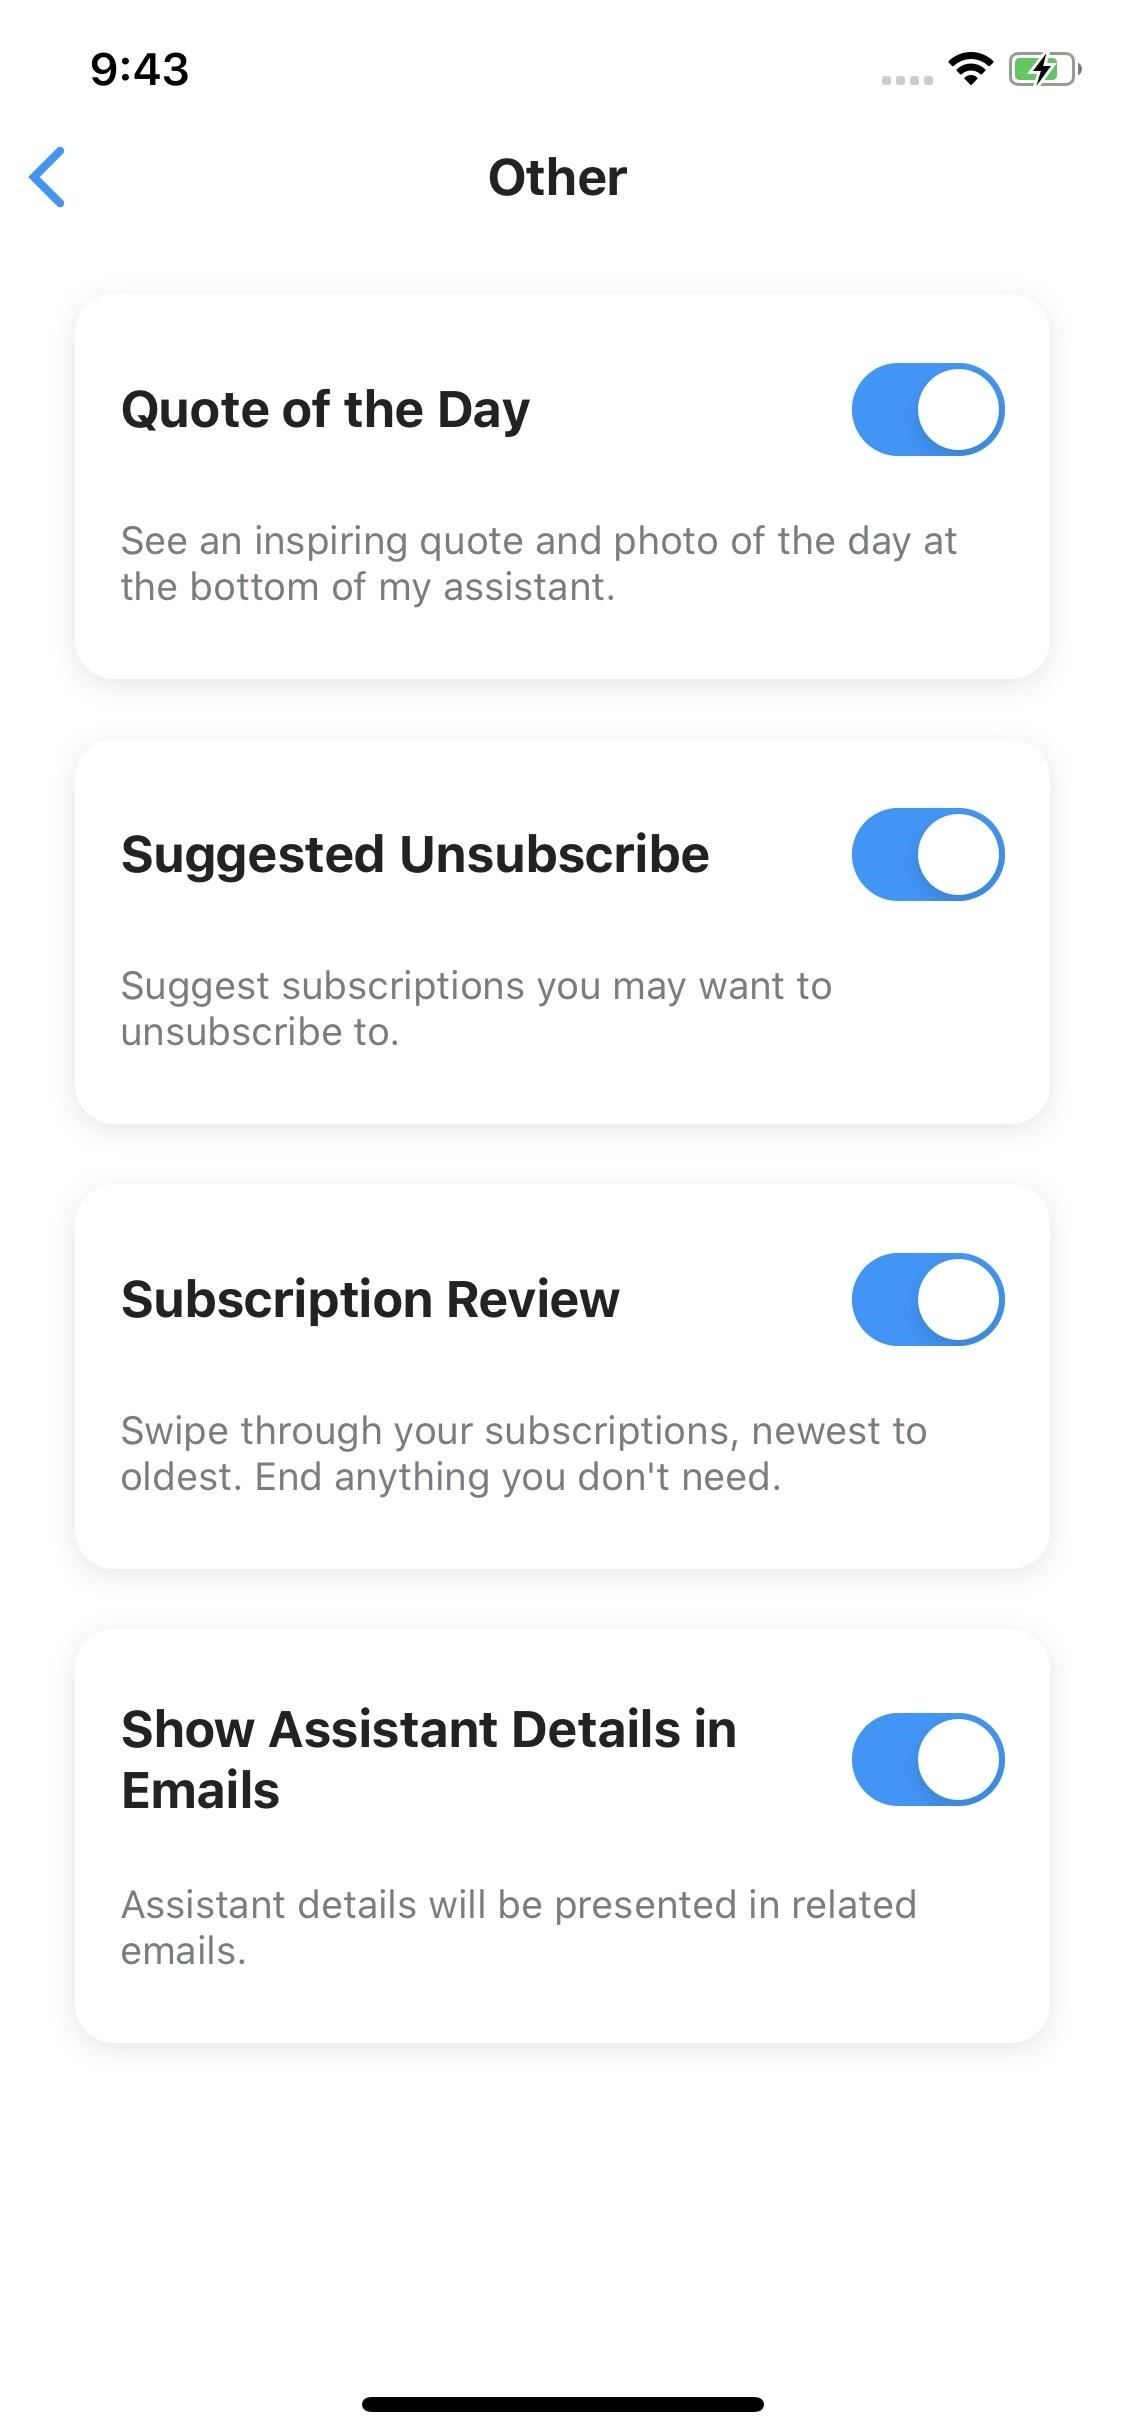 Personalize Edison Mail's Assistant to Make It Work for You